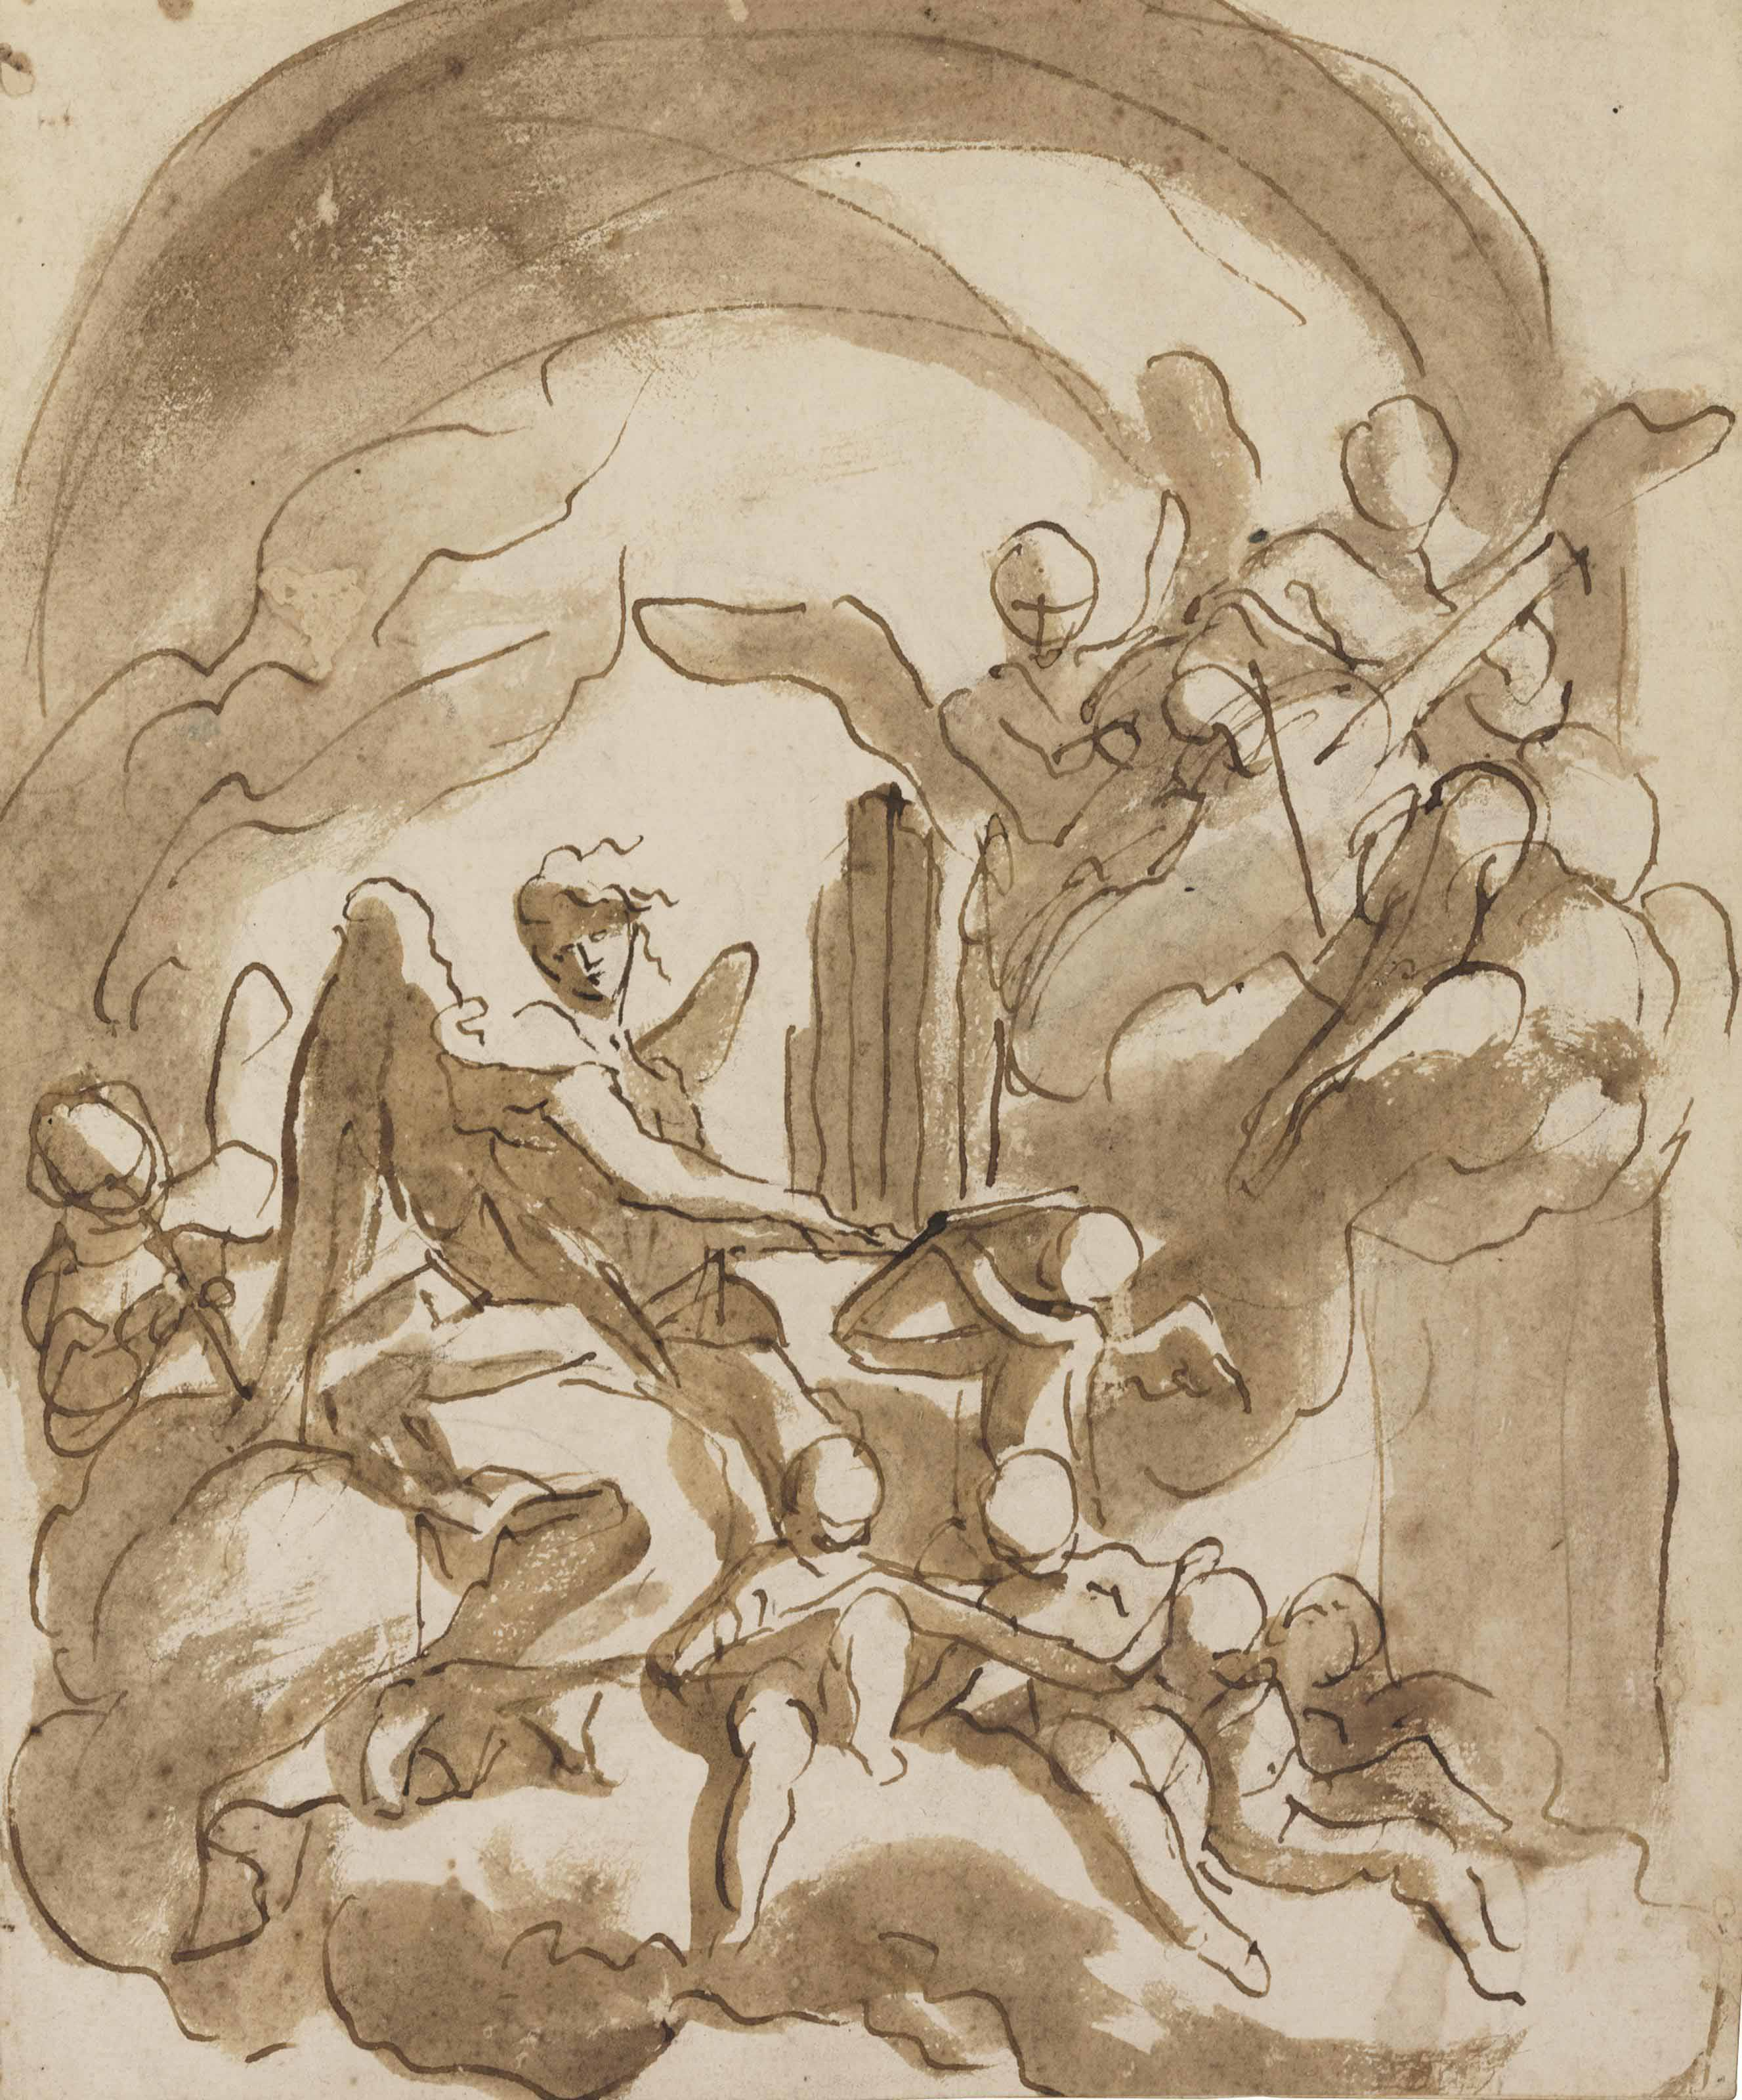 Angels and putti making music in the clouds